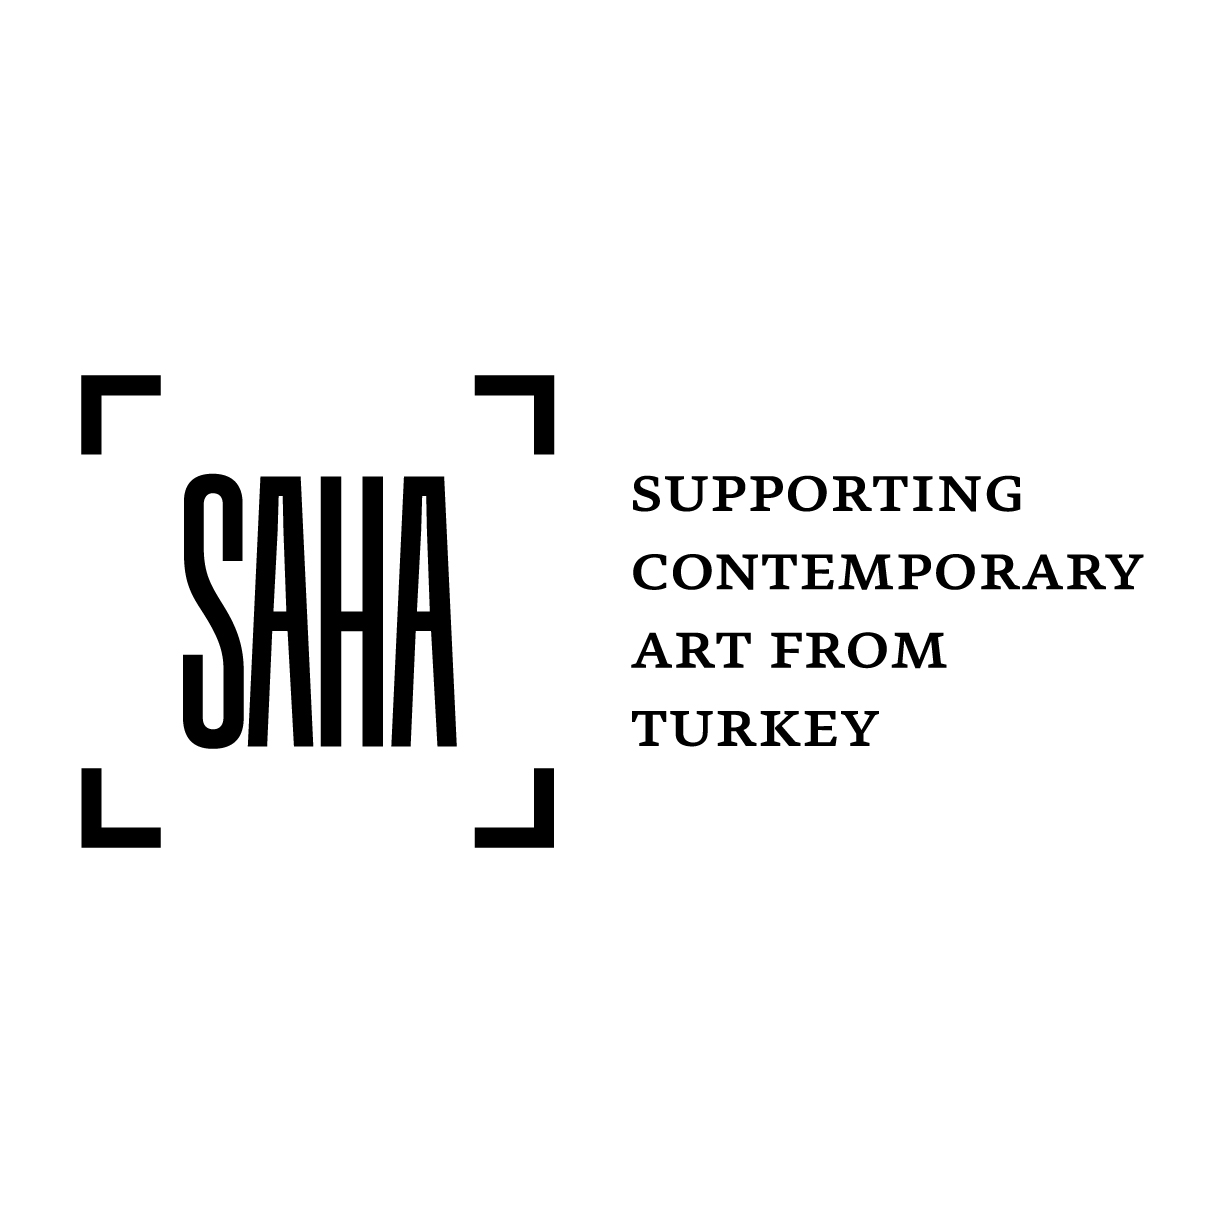 SAHA_logo_eng_supporting contemporary art from turkey.jpg